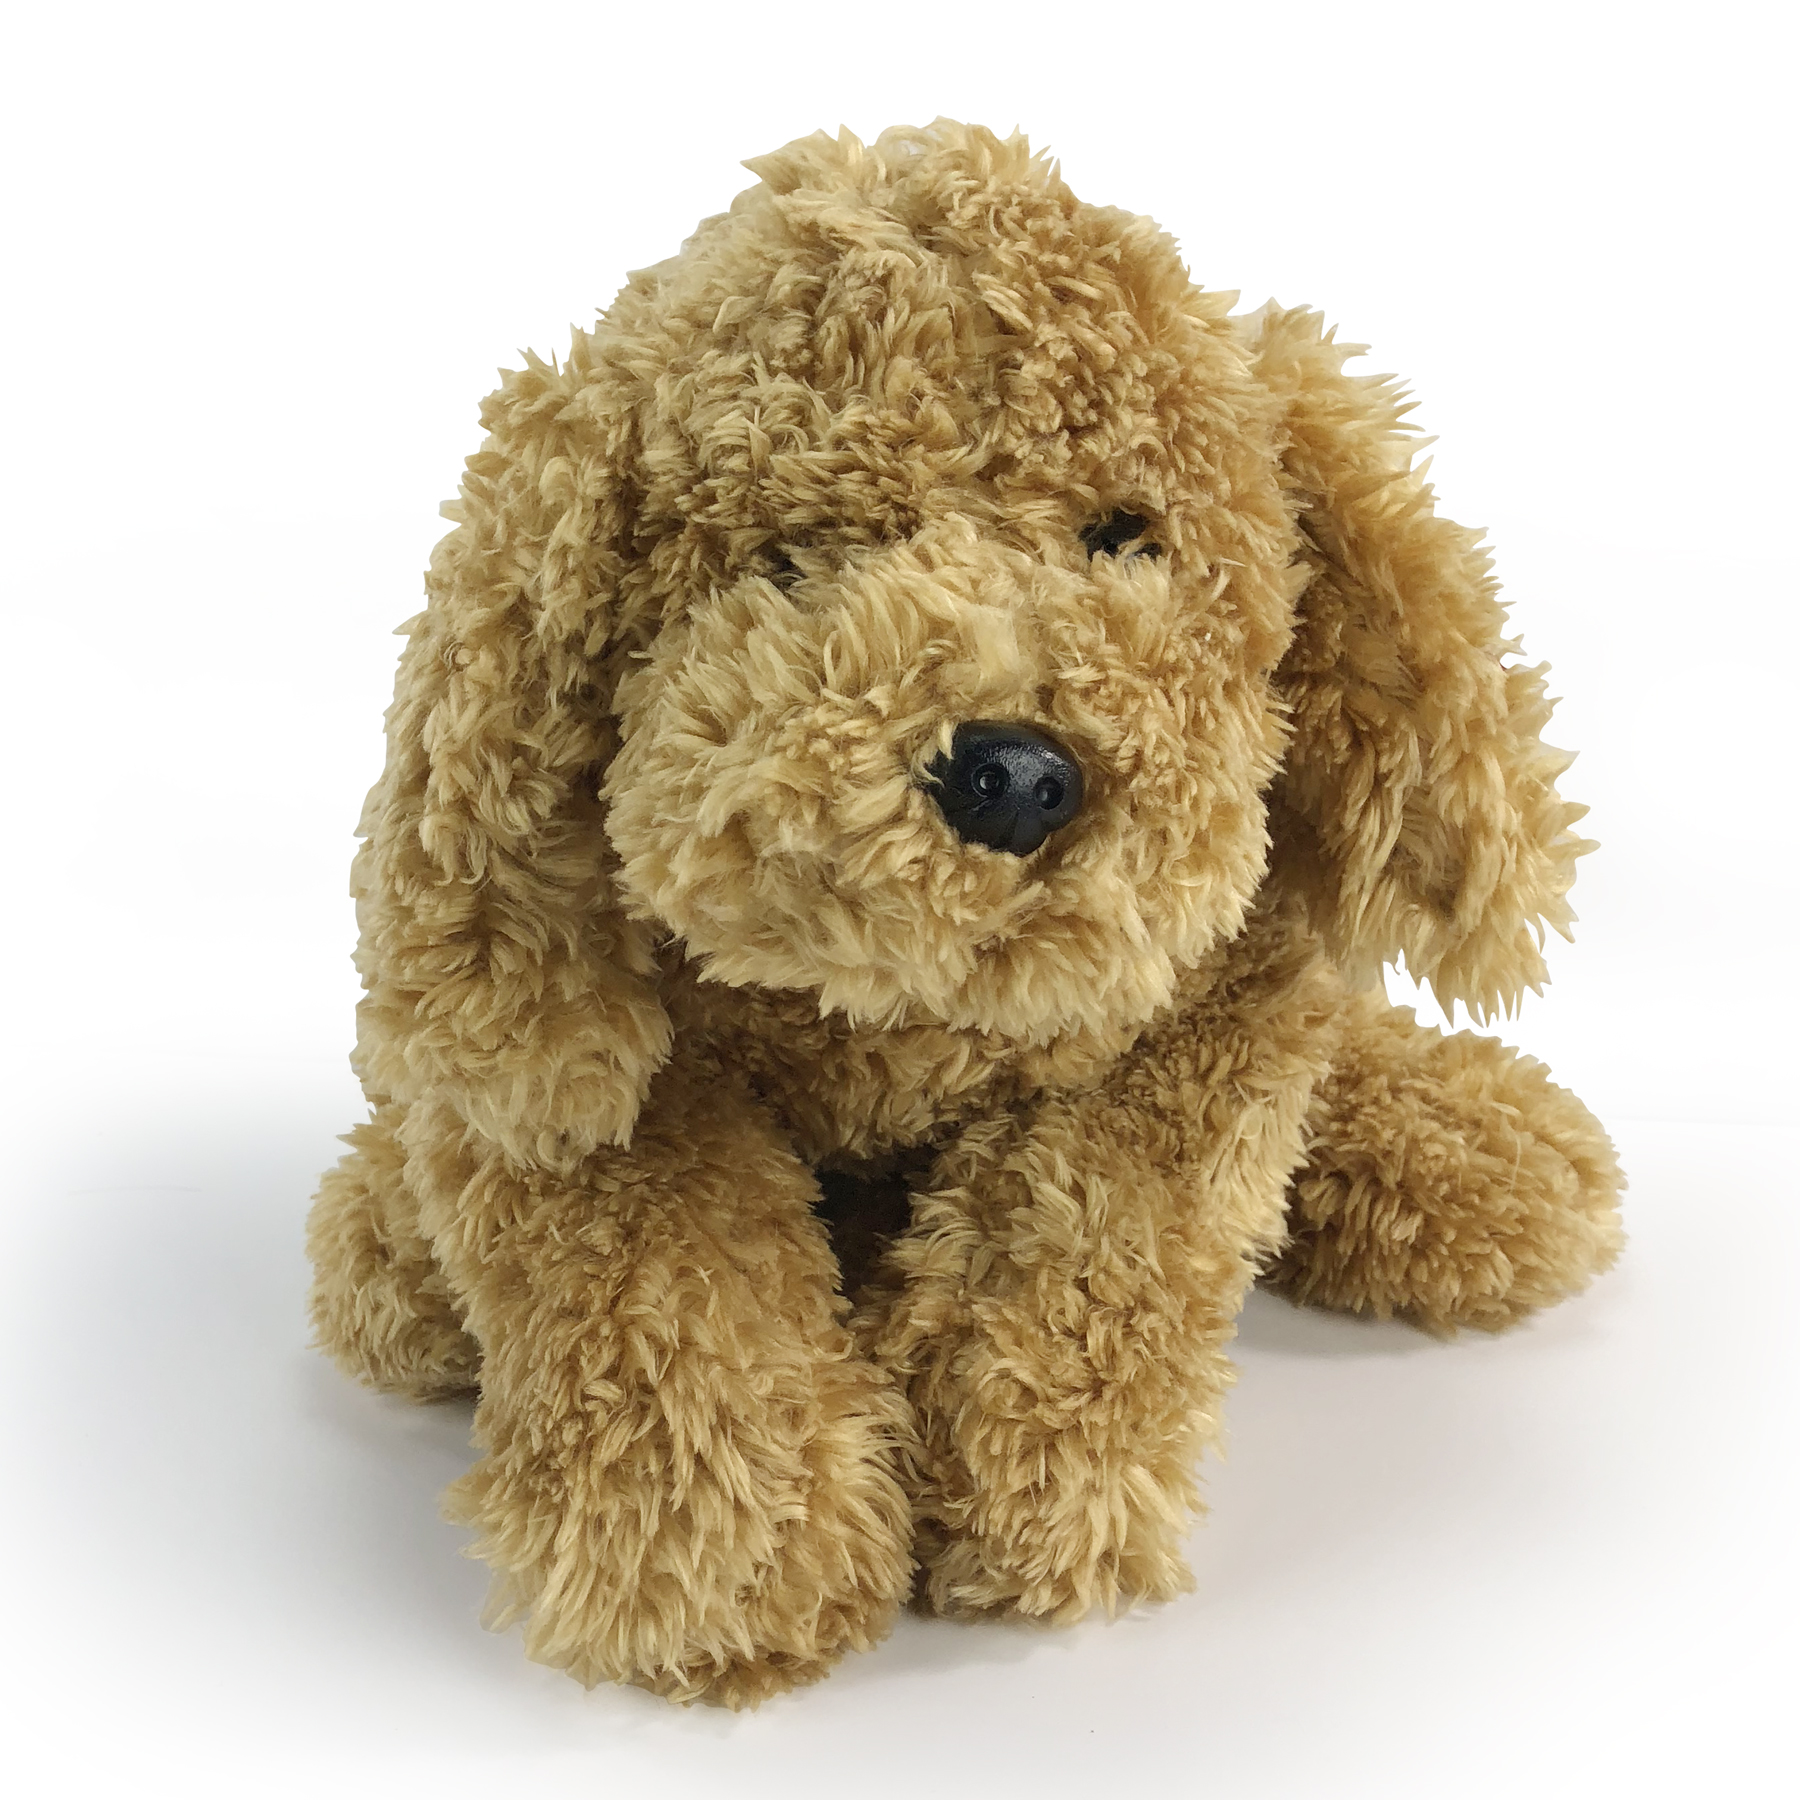 Stuffed Goldendoodle | Stuffed Puppy Dog